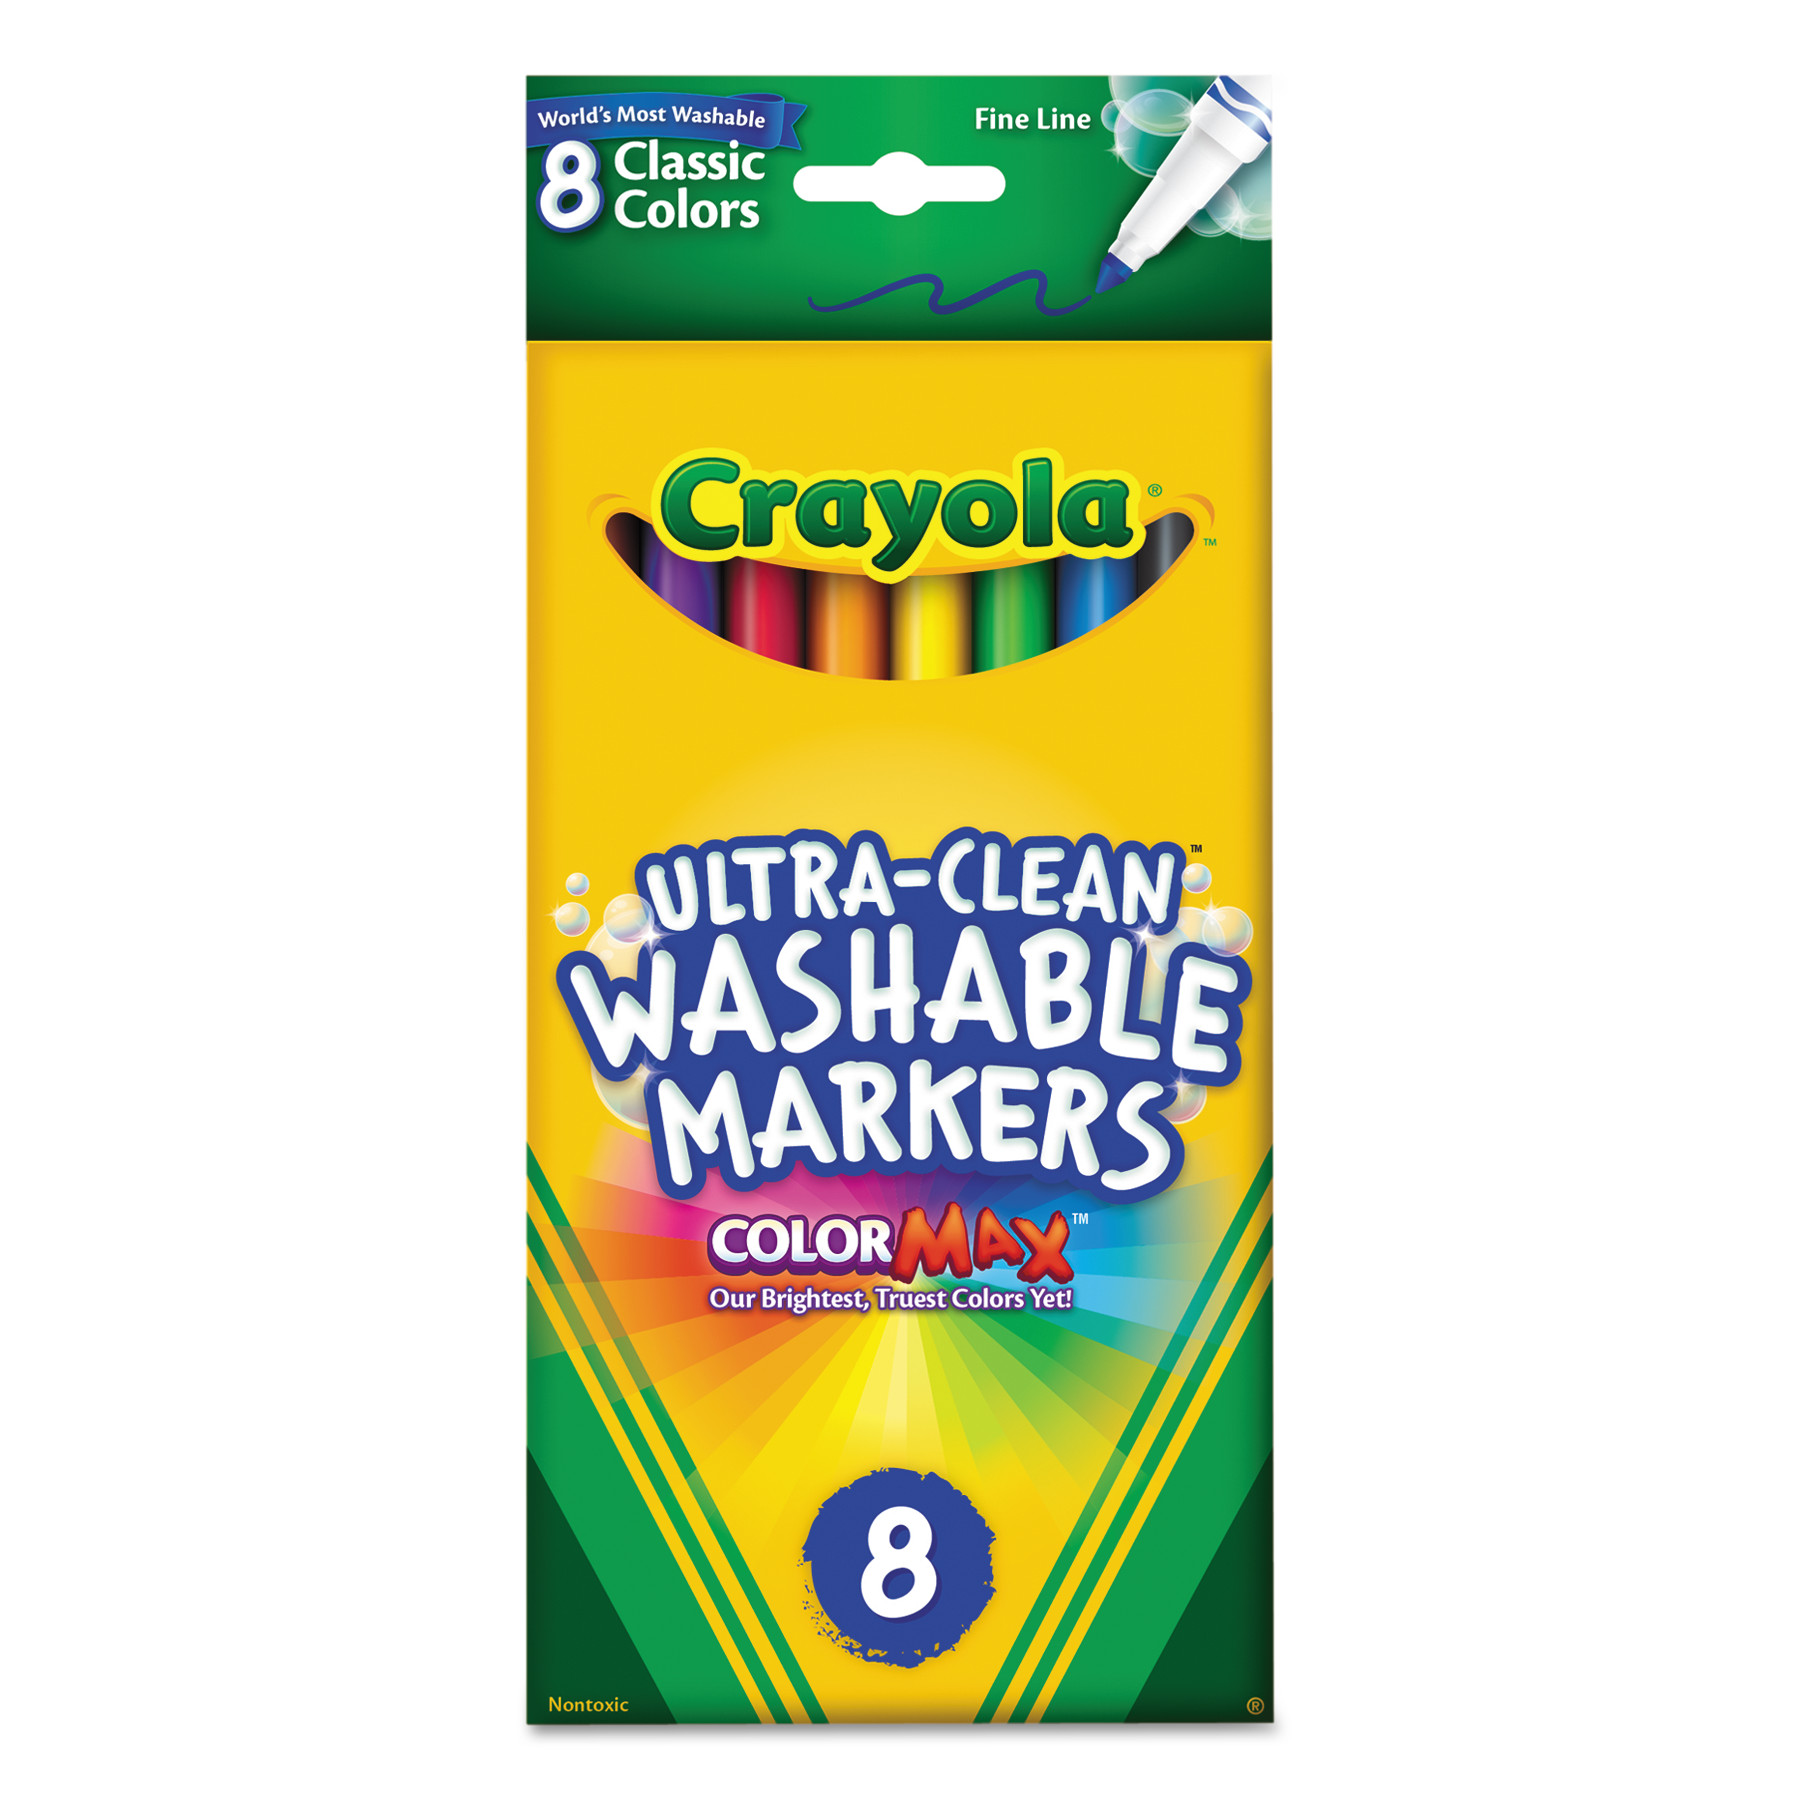 Crayola Washable Markers, Fine Point, Classic Colors, 8 Count